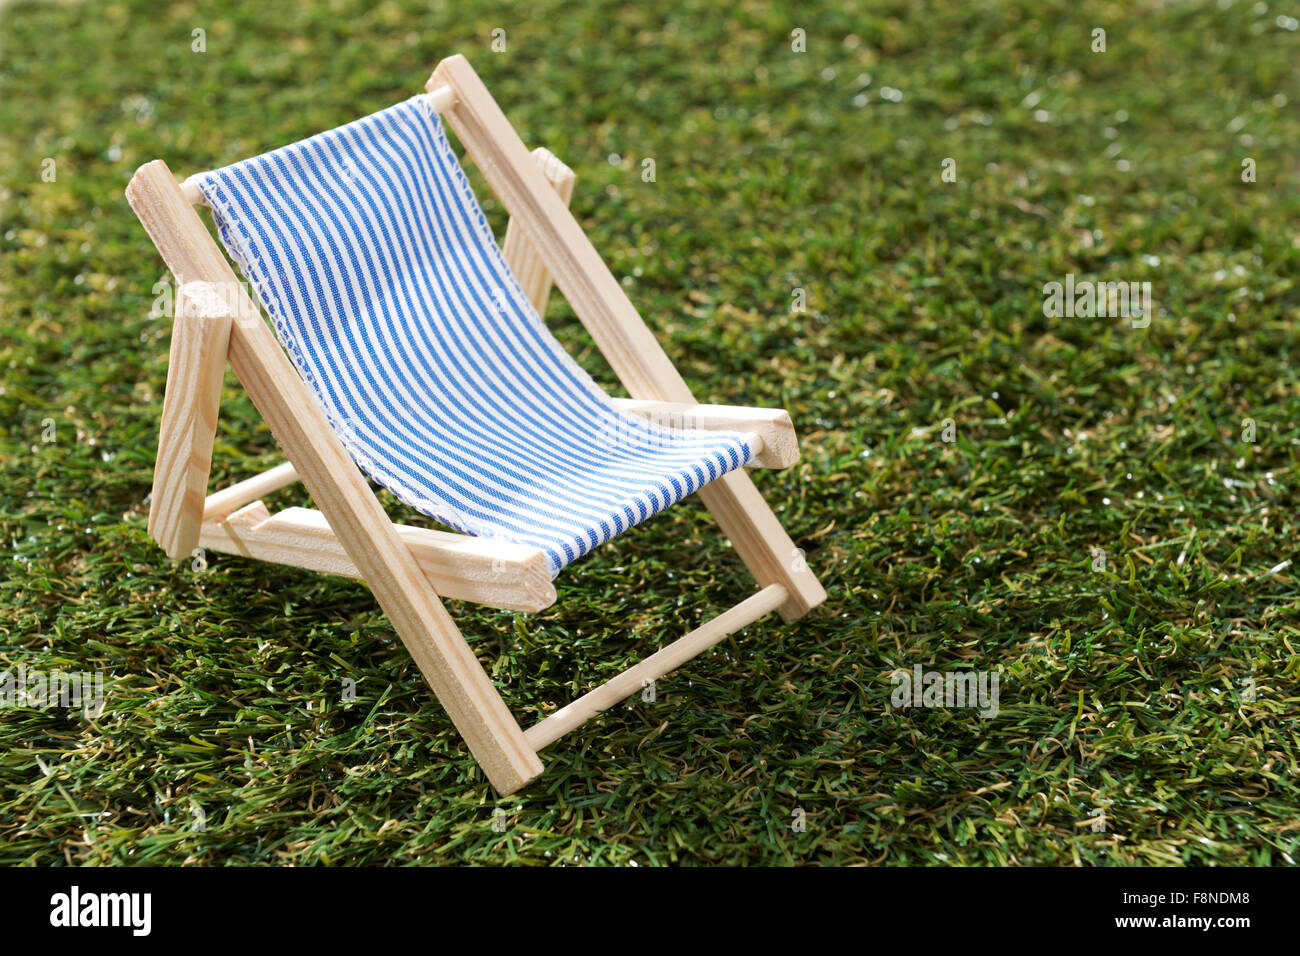 Model Deck Chair On Grass - Stock Image